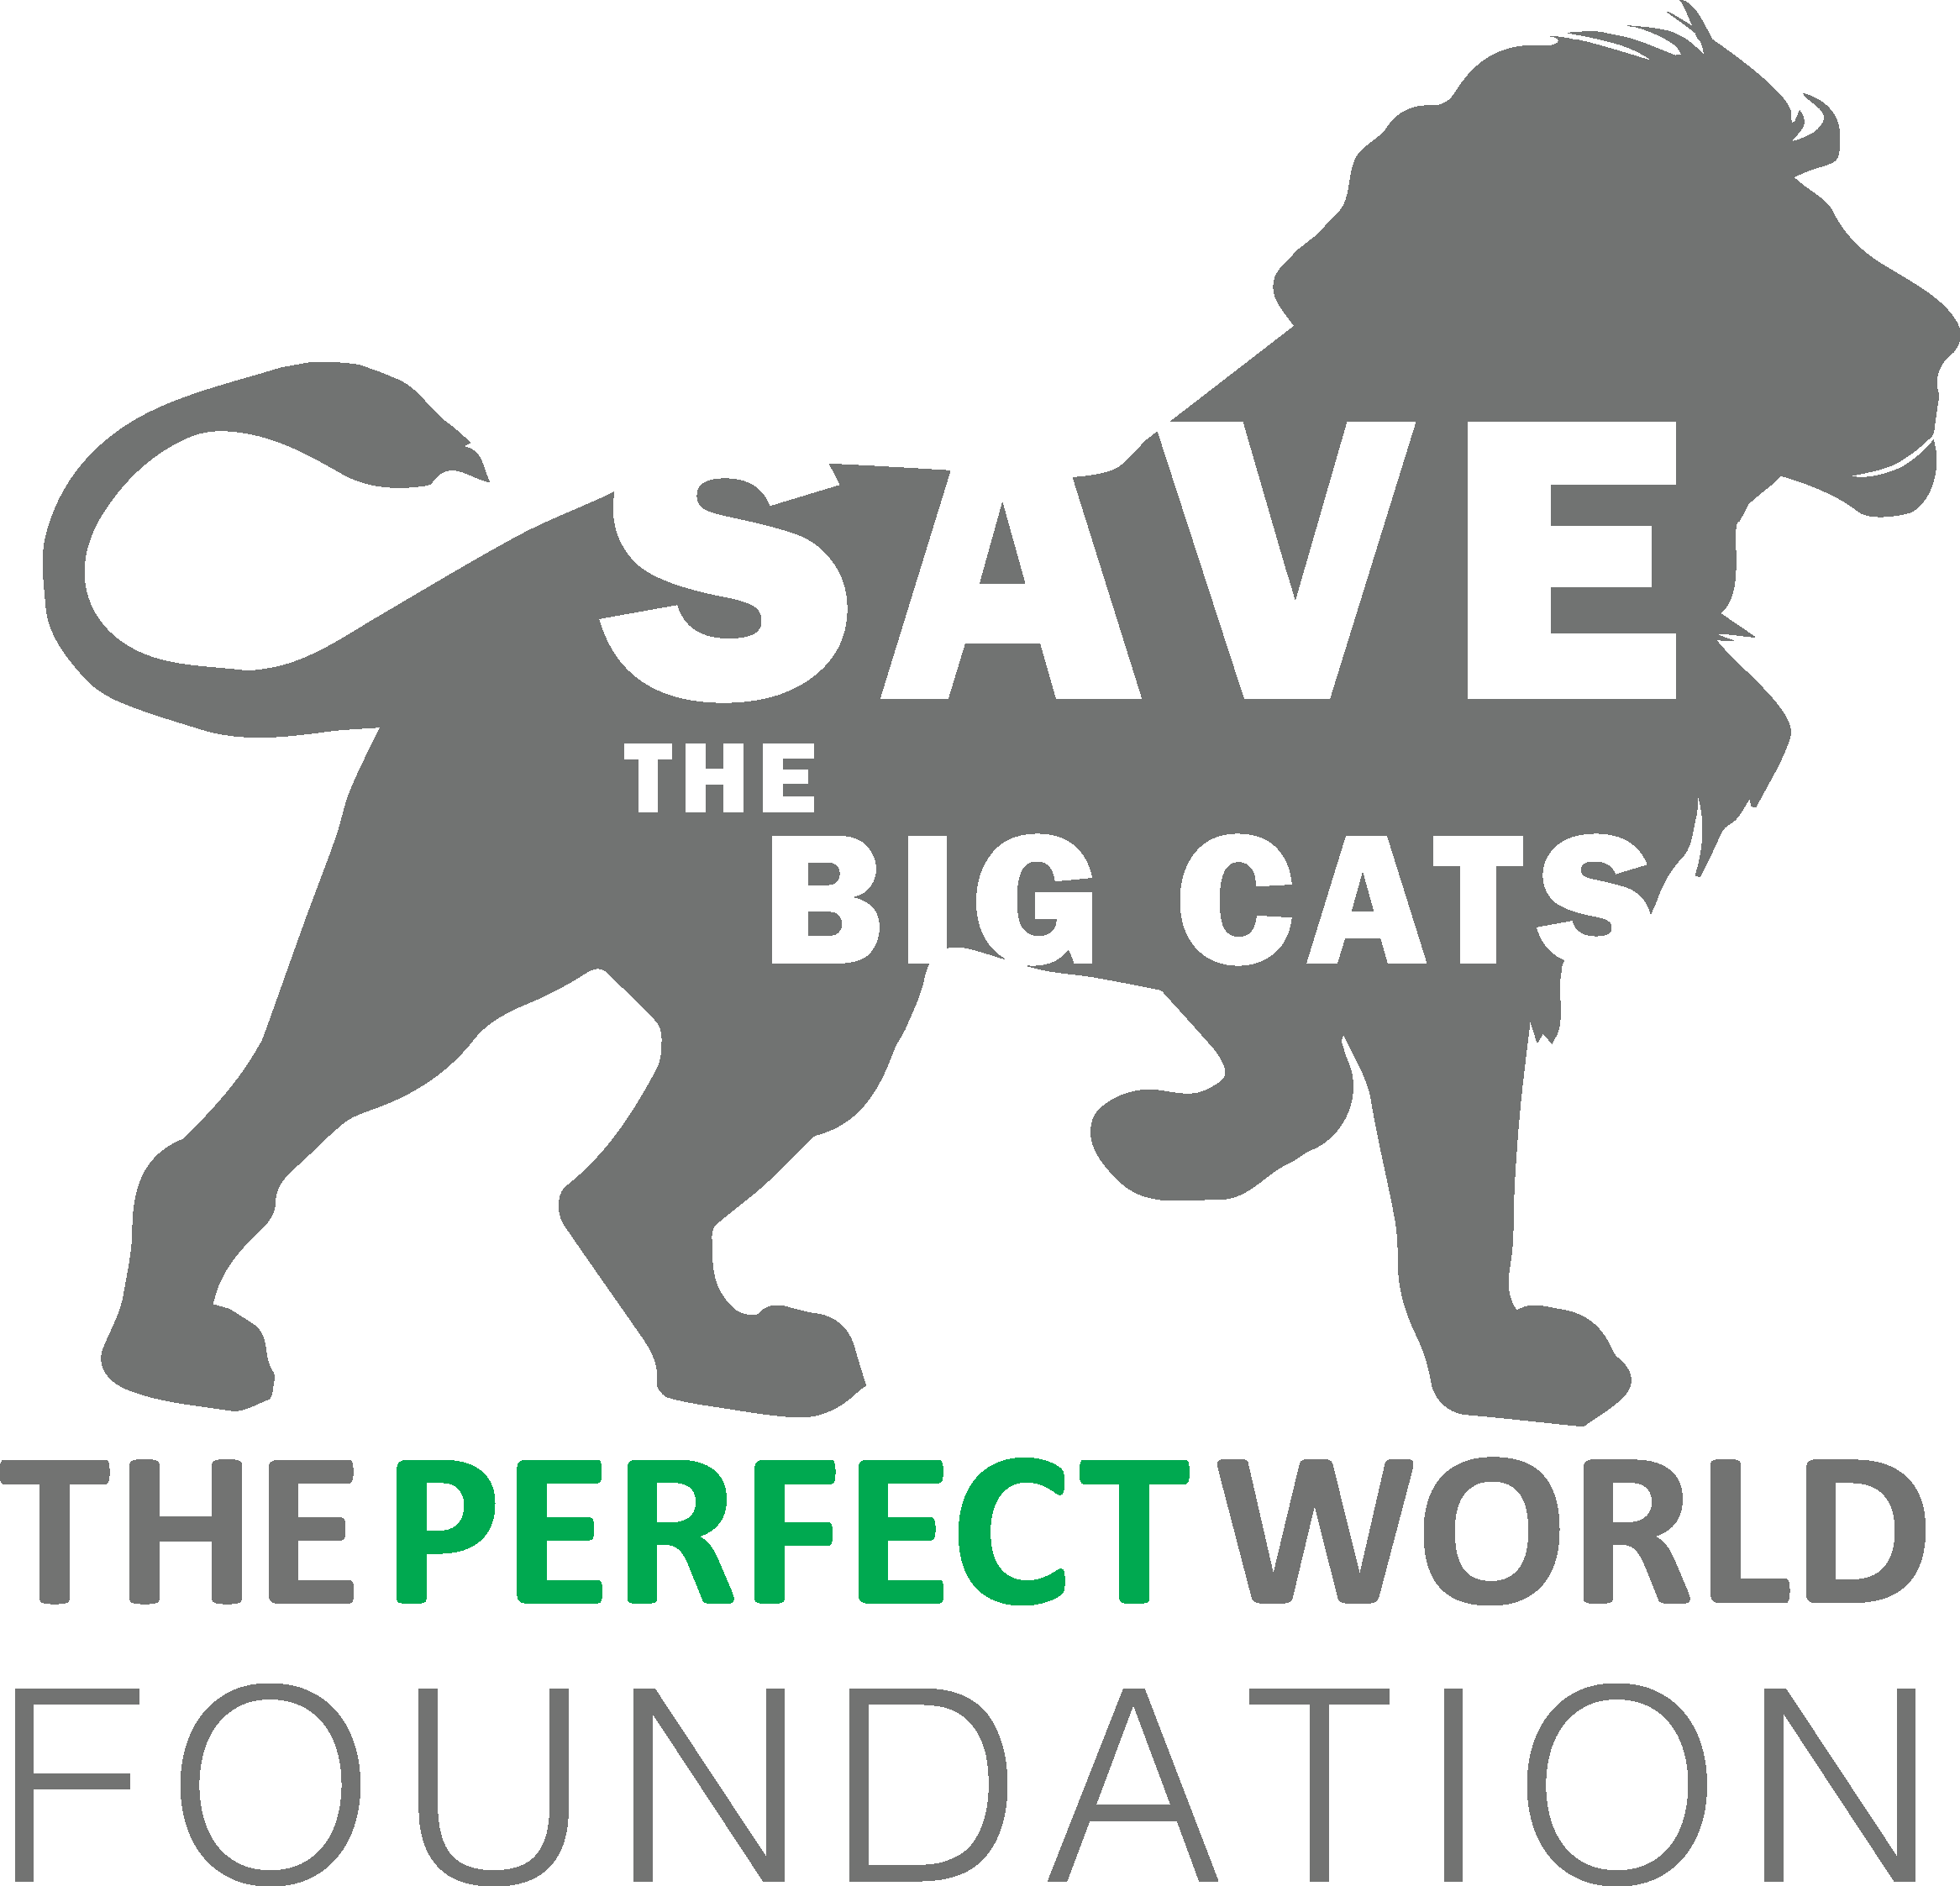 save_the_big_cats_grey